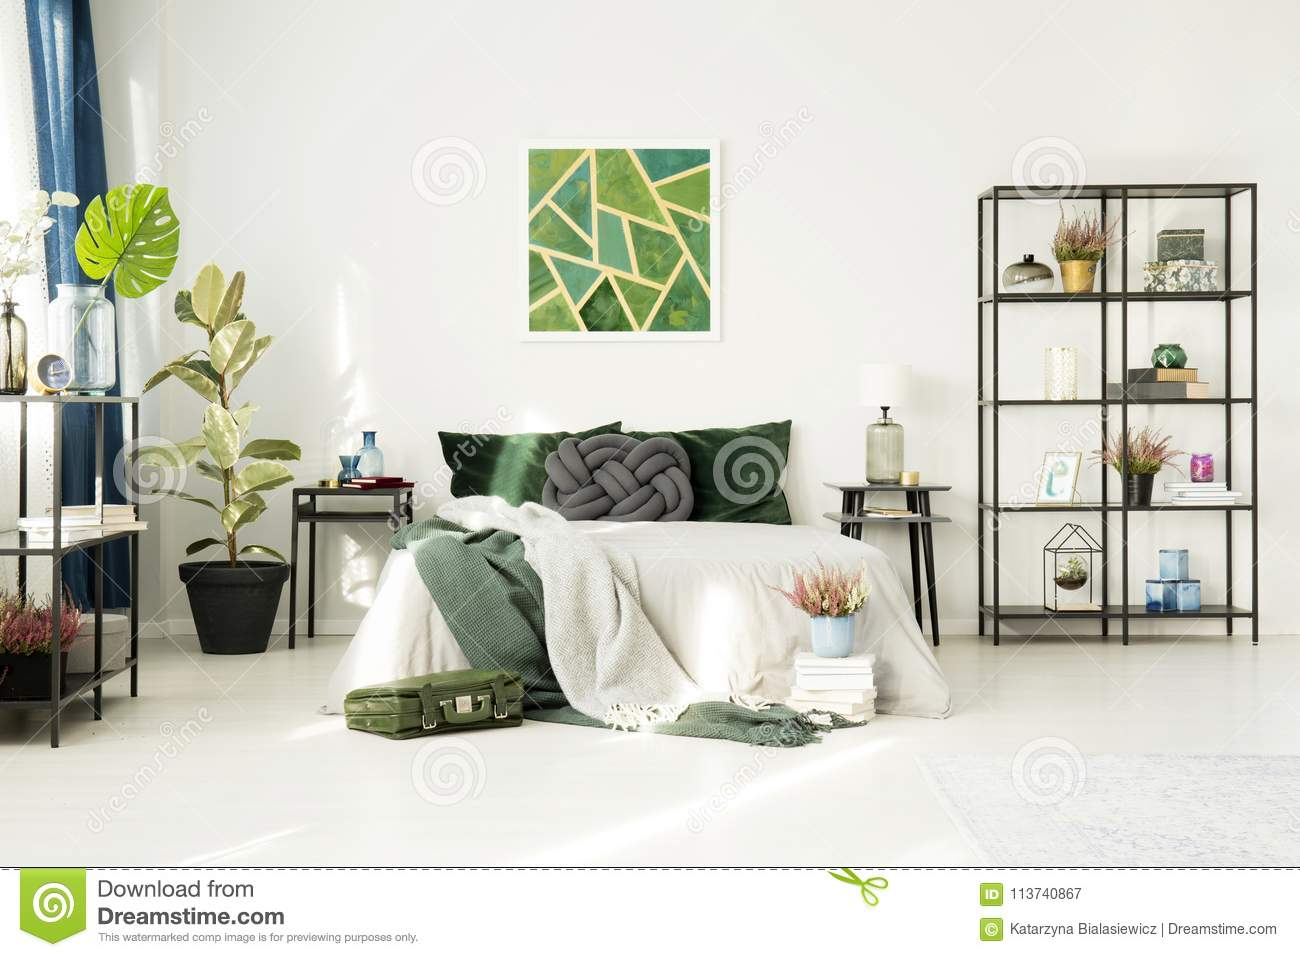 Hotel Bedroom With Emerald Decorations Stock Image - Image of ...